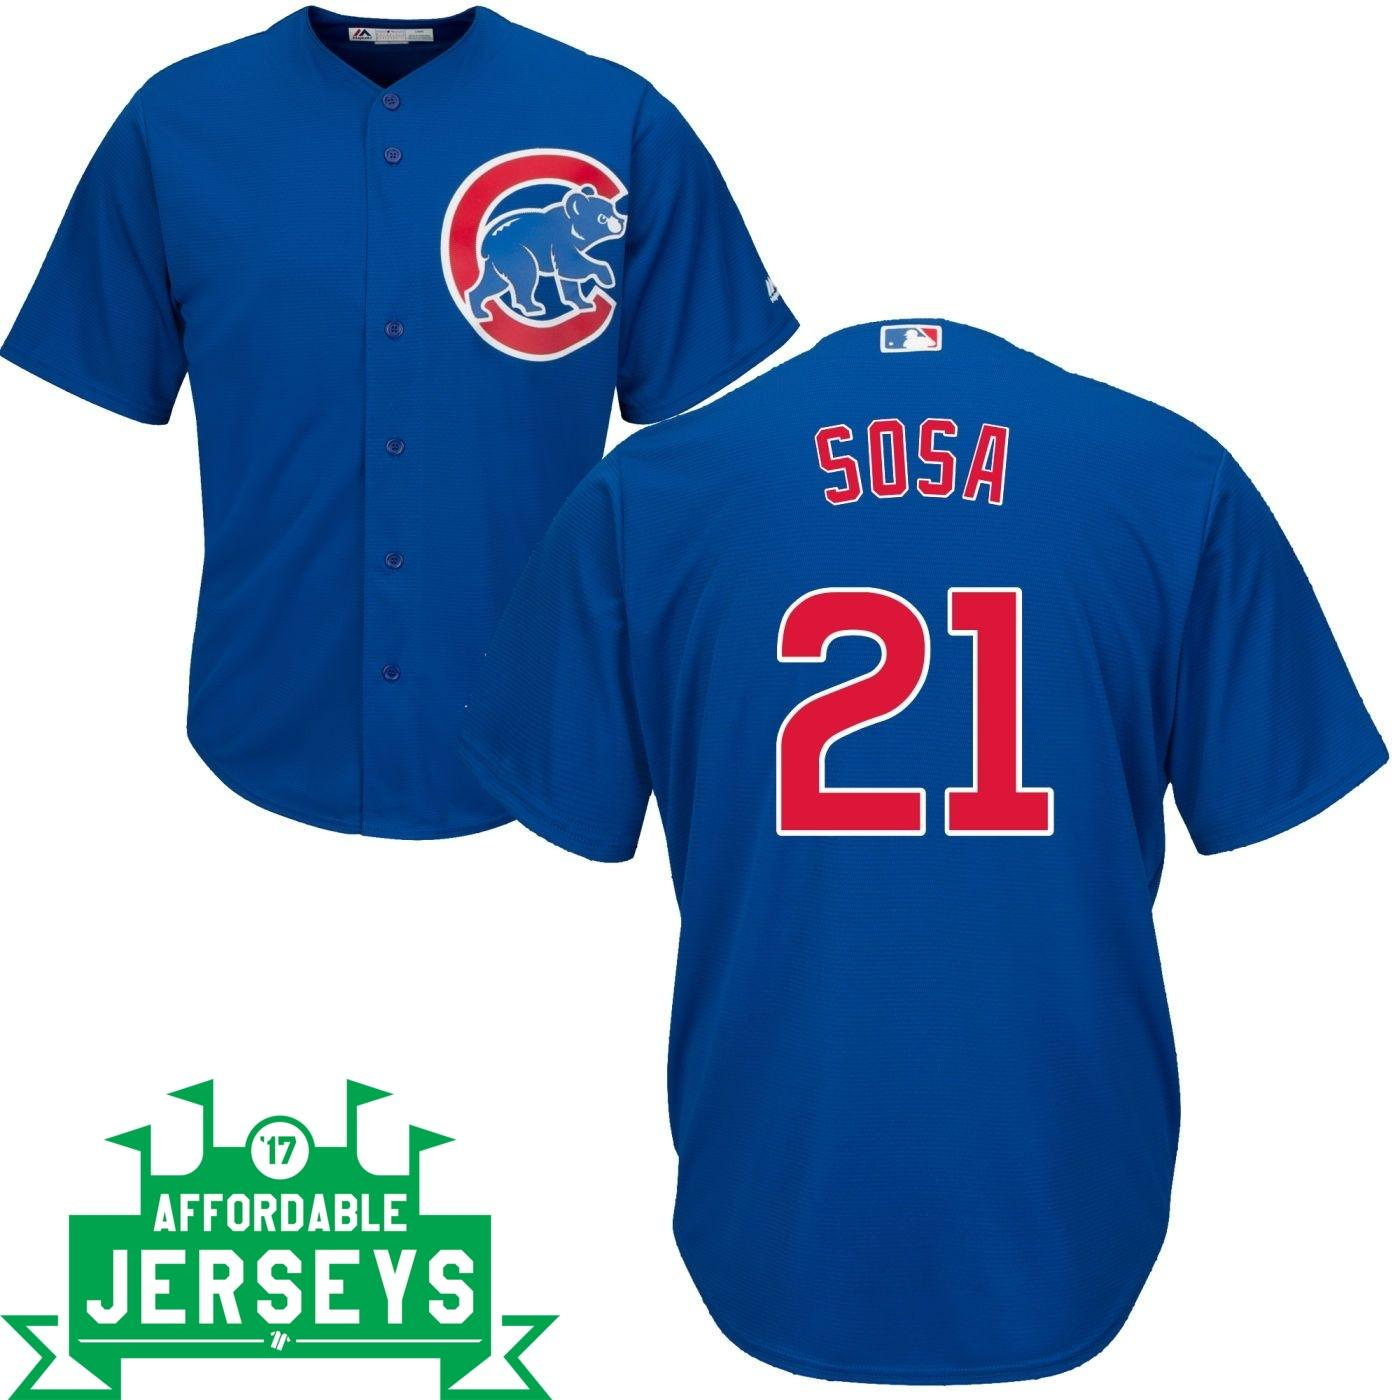 Sammy Sosa Road Cool Base Player Jersey - AffordableJerseys.com